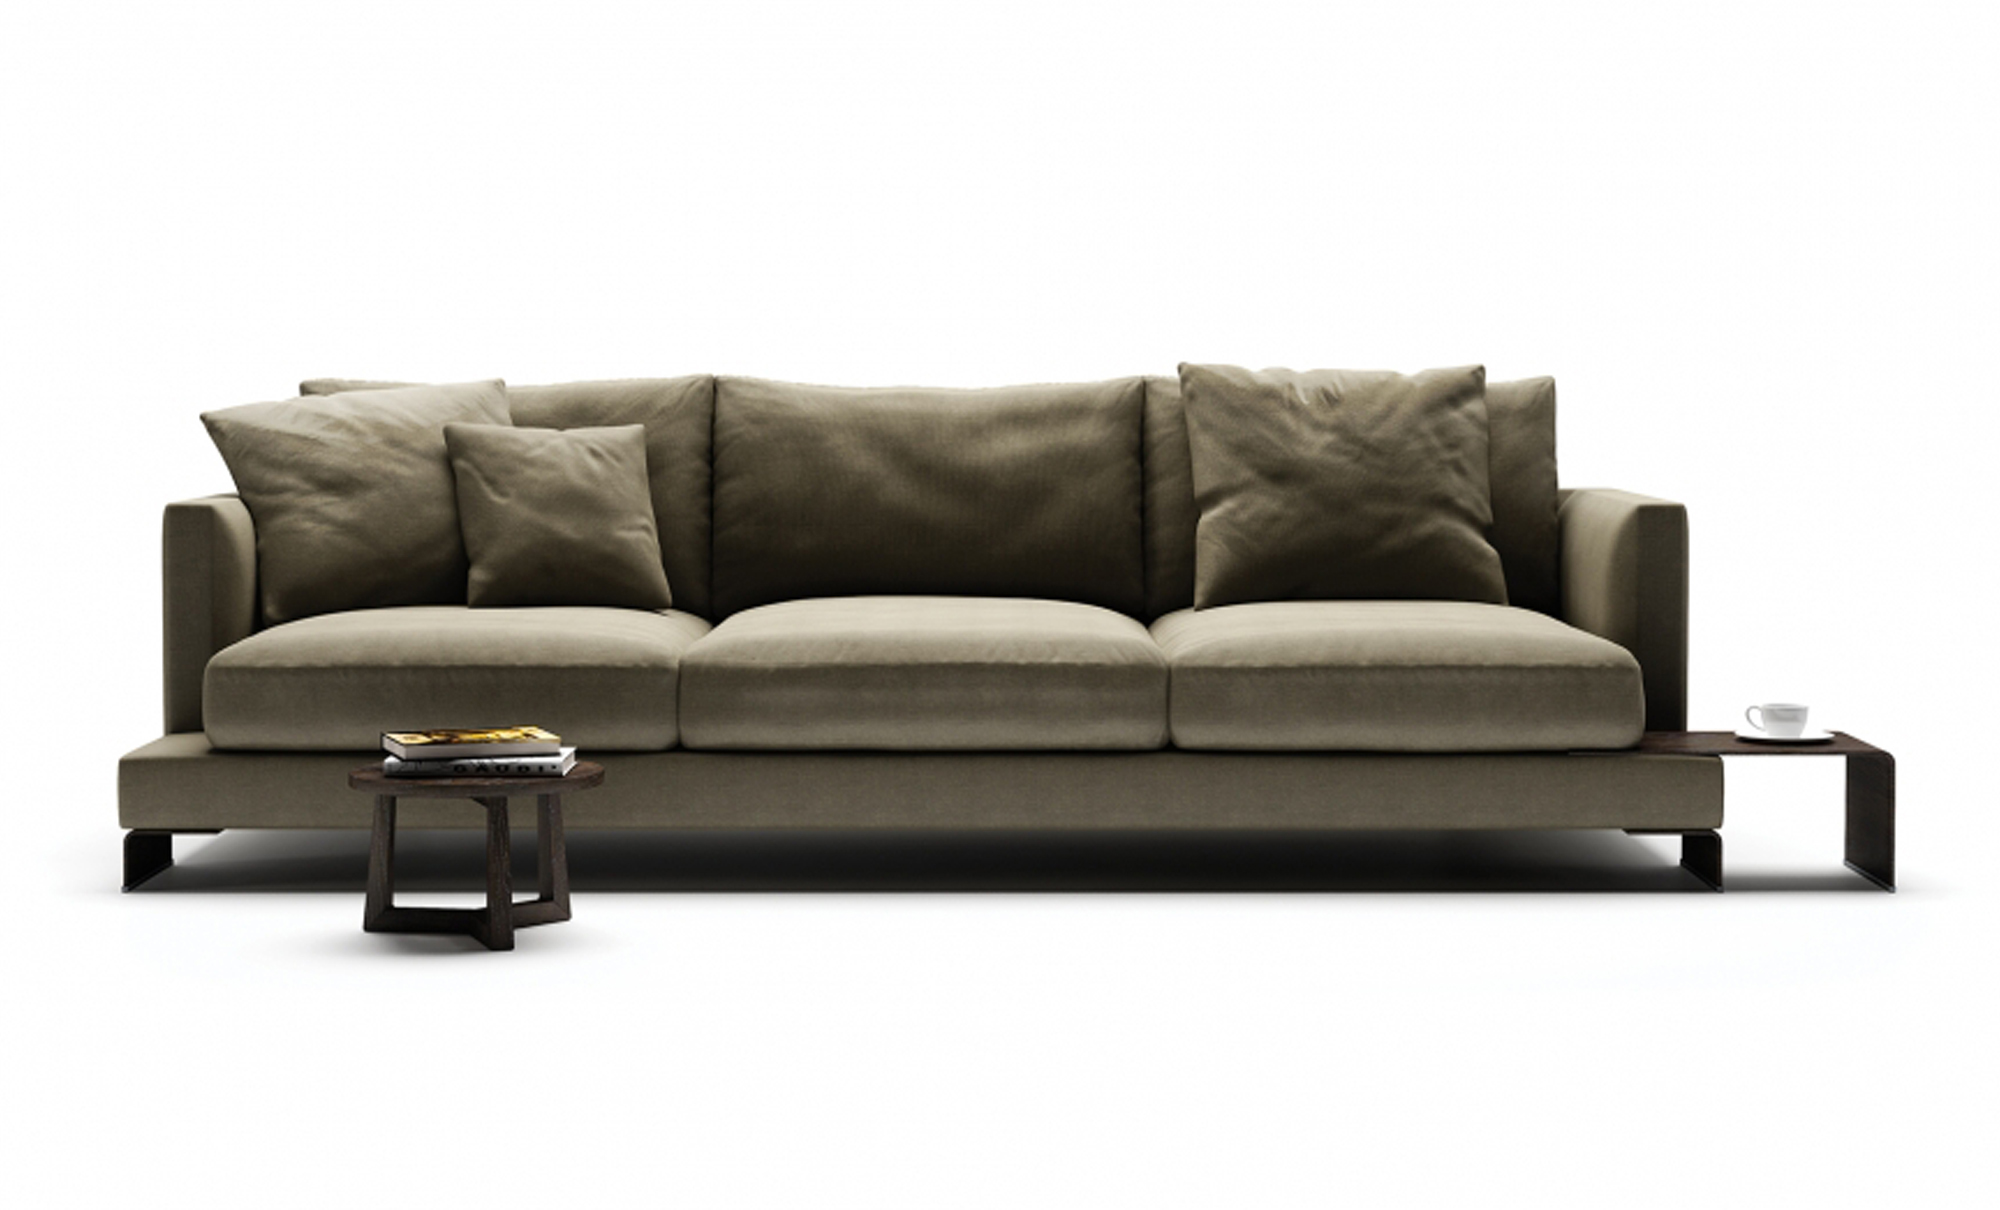 Outdoor Furniture Couch Cushions